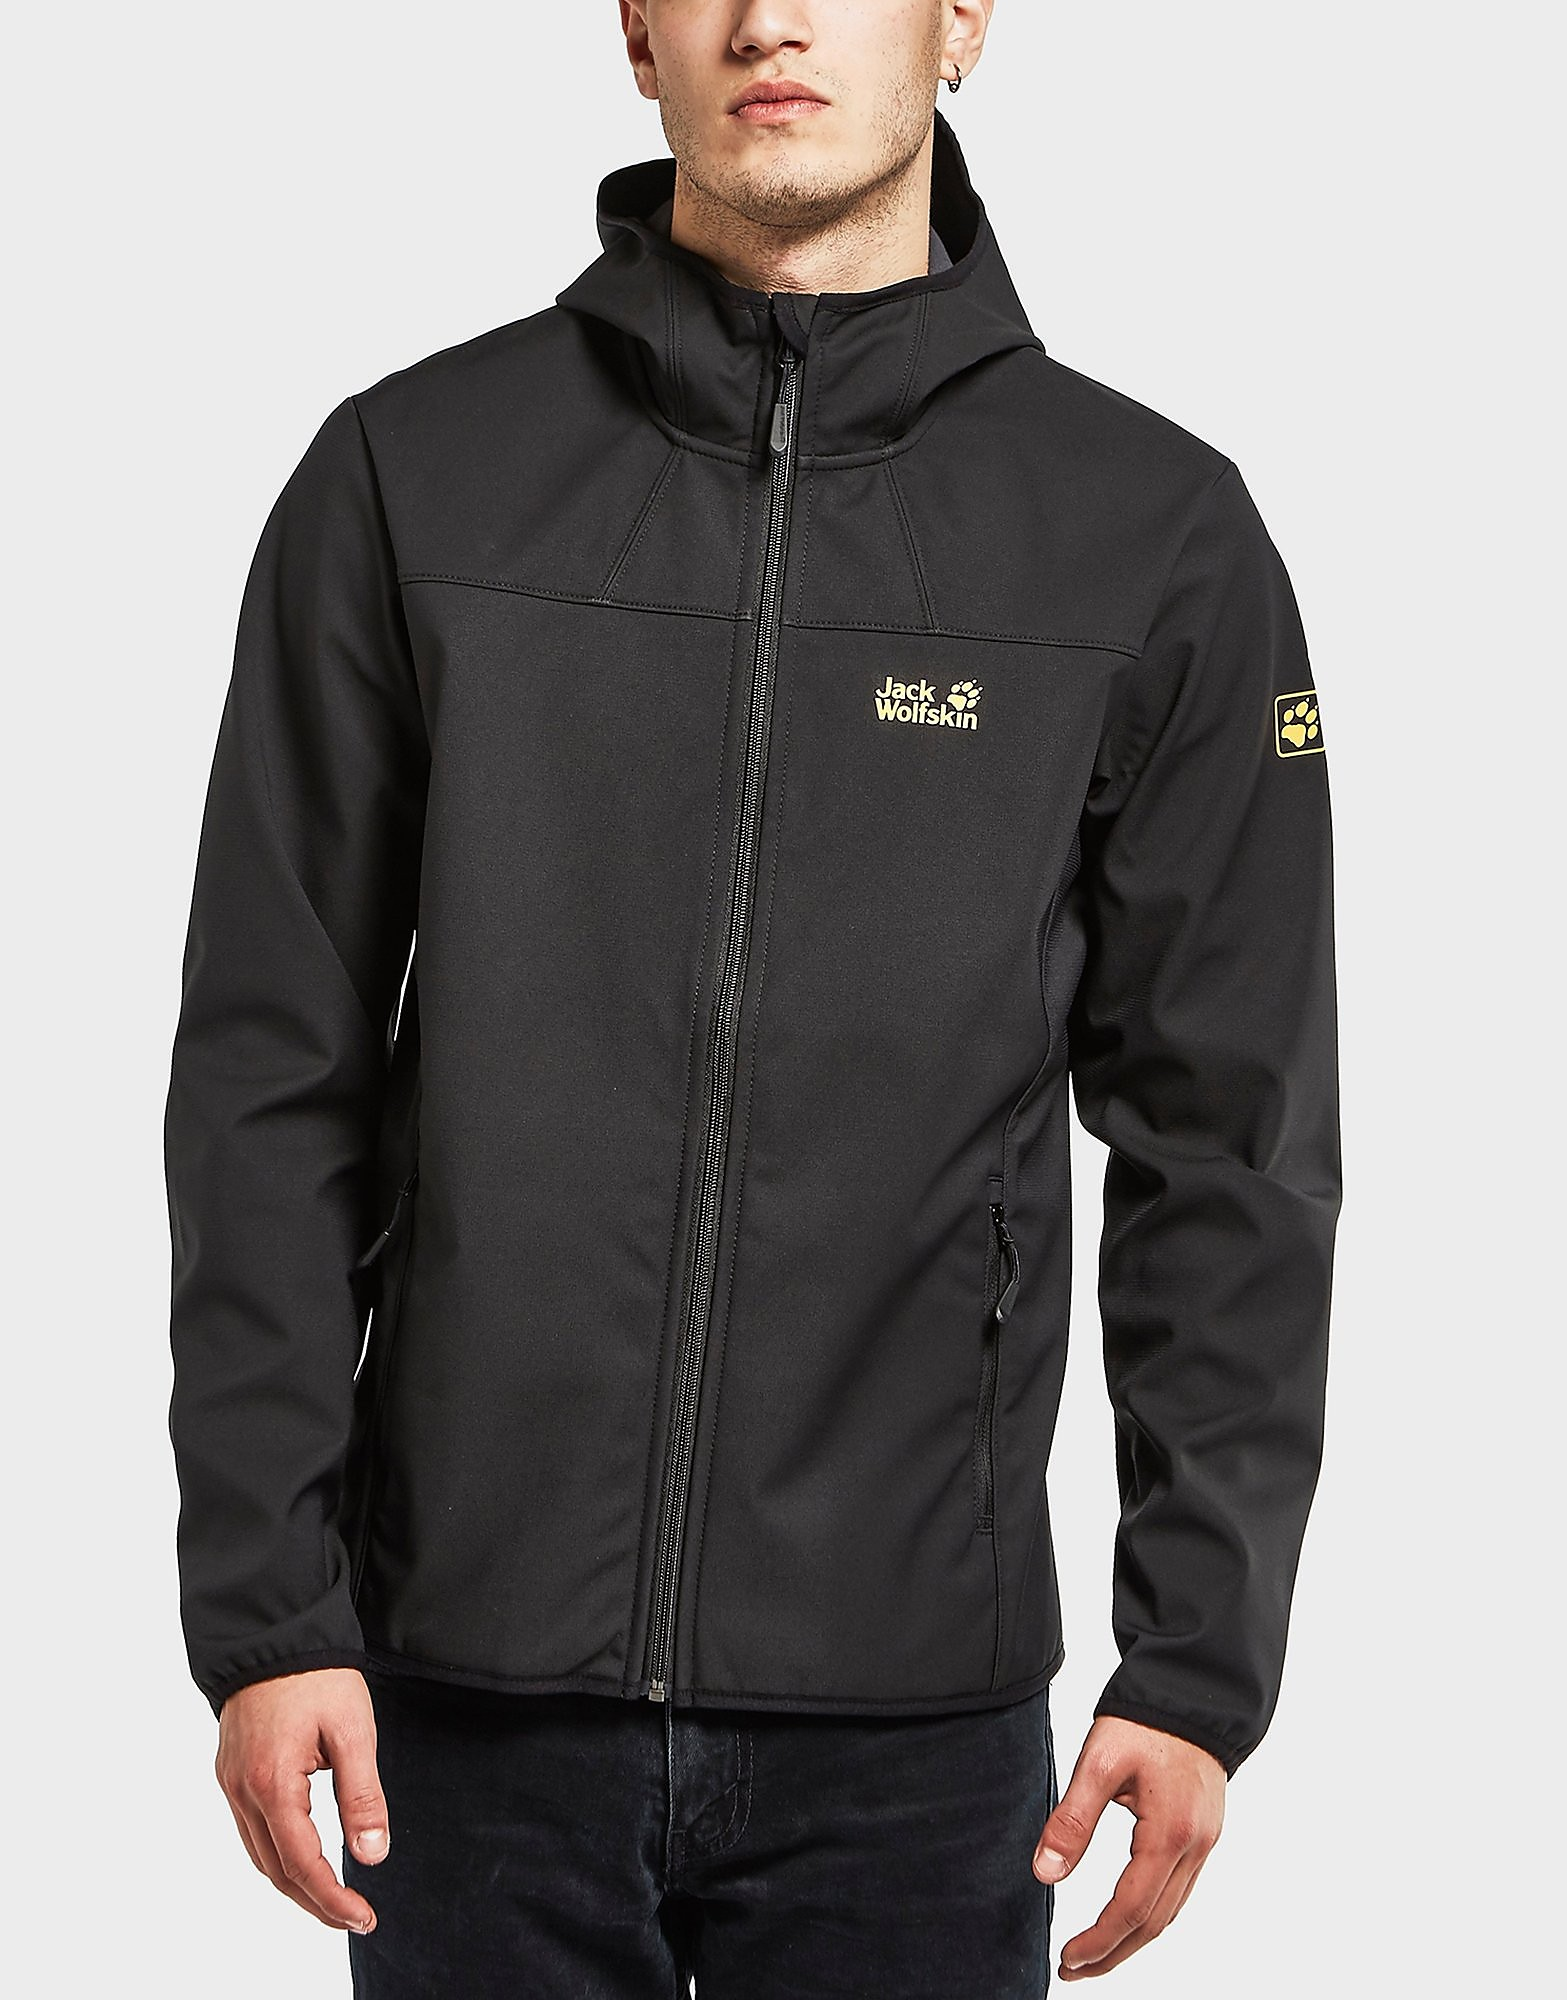 Jack Wolfskin Northern Point Shell Lightweight Jacket  Black Black